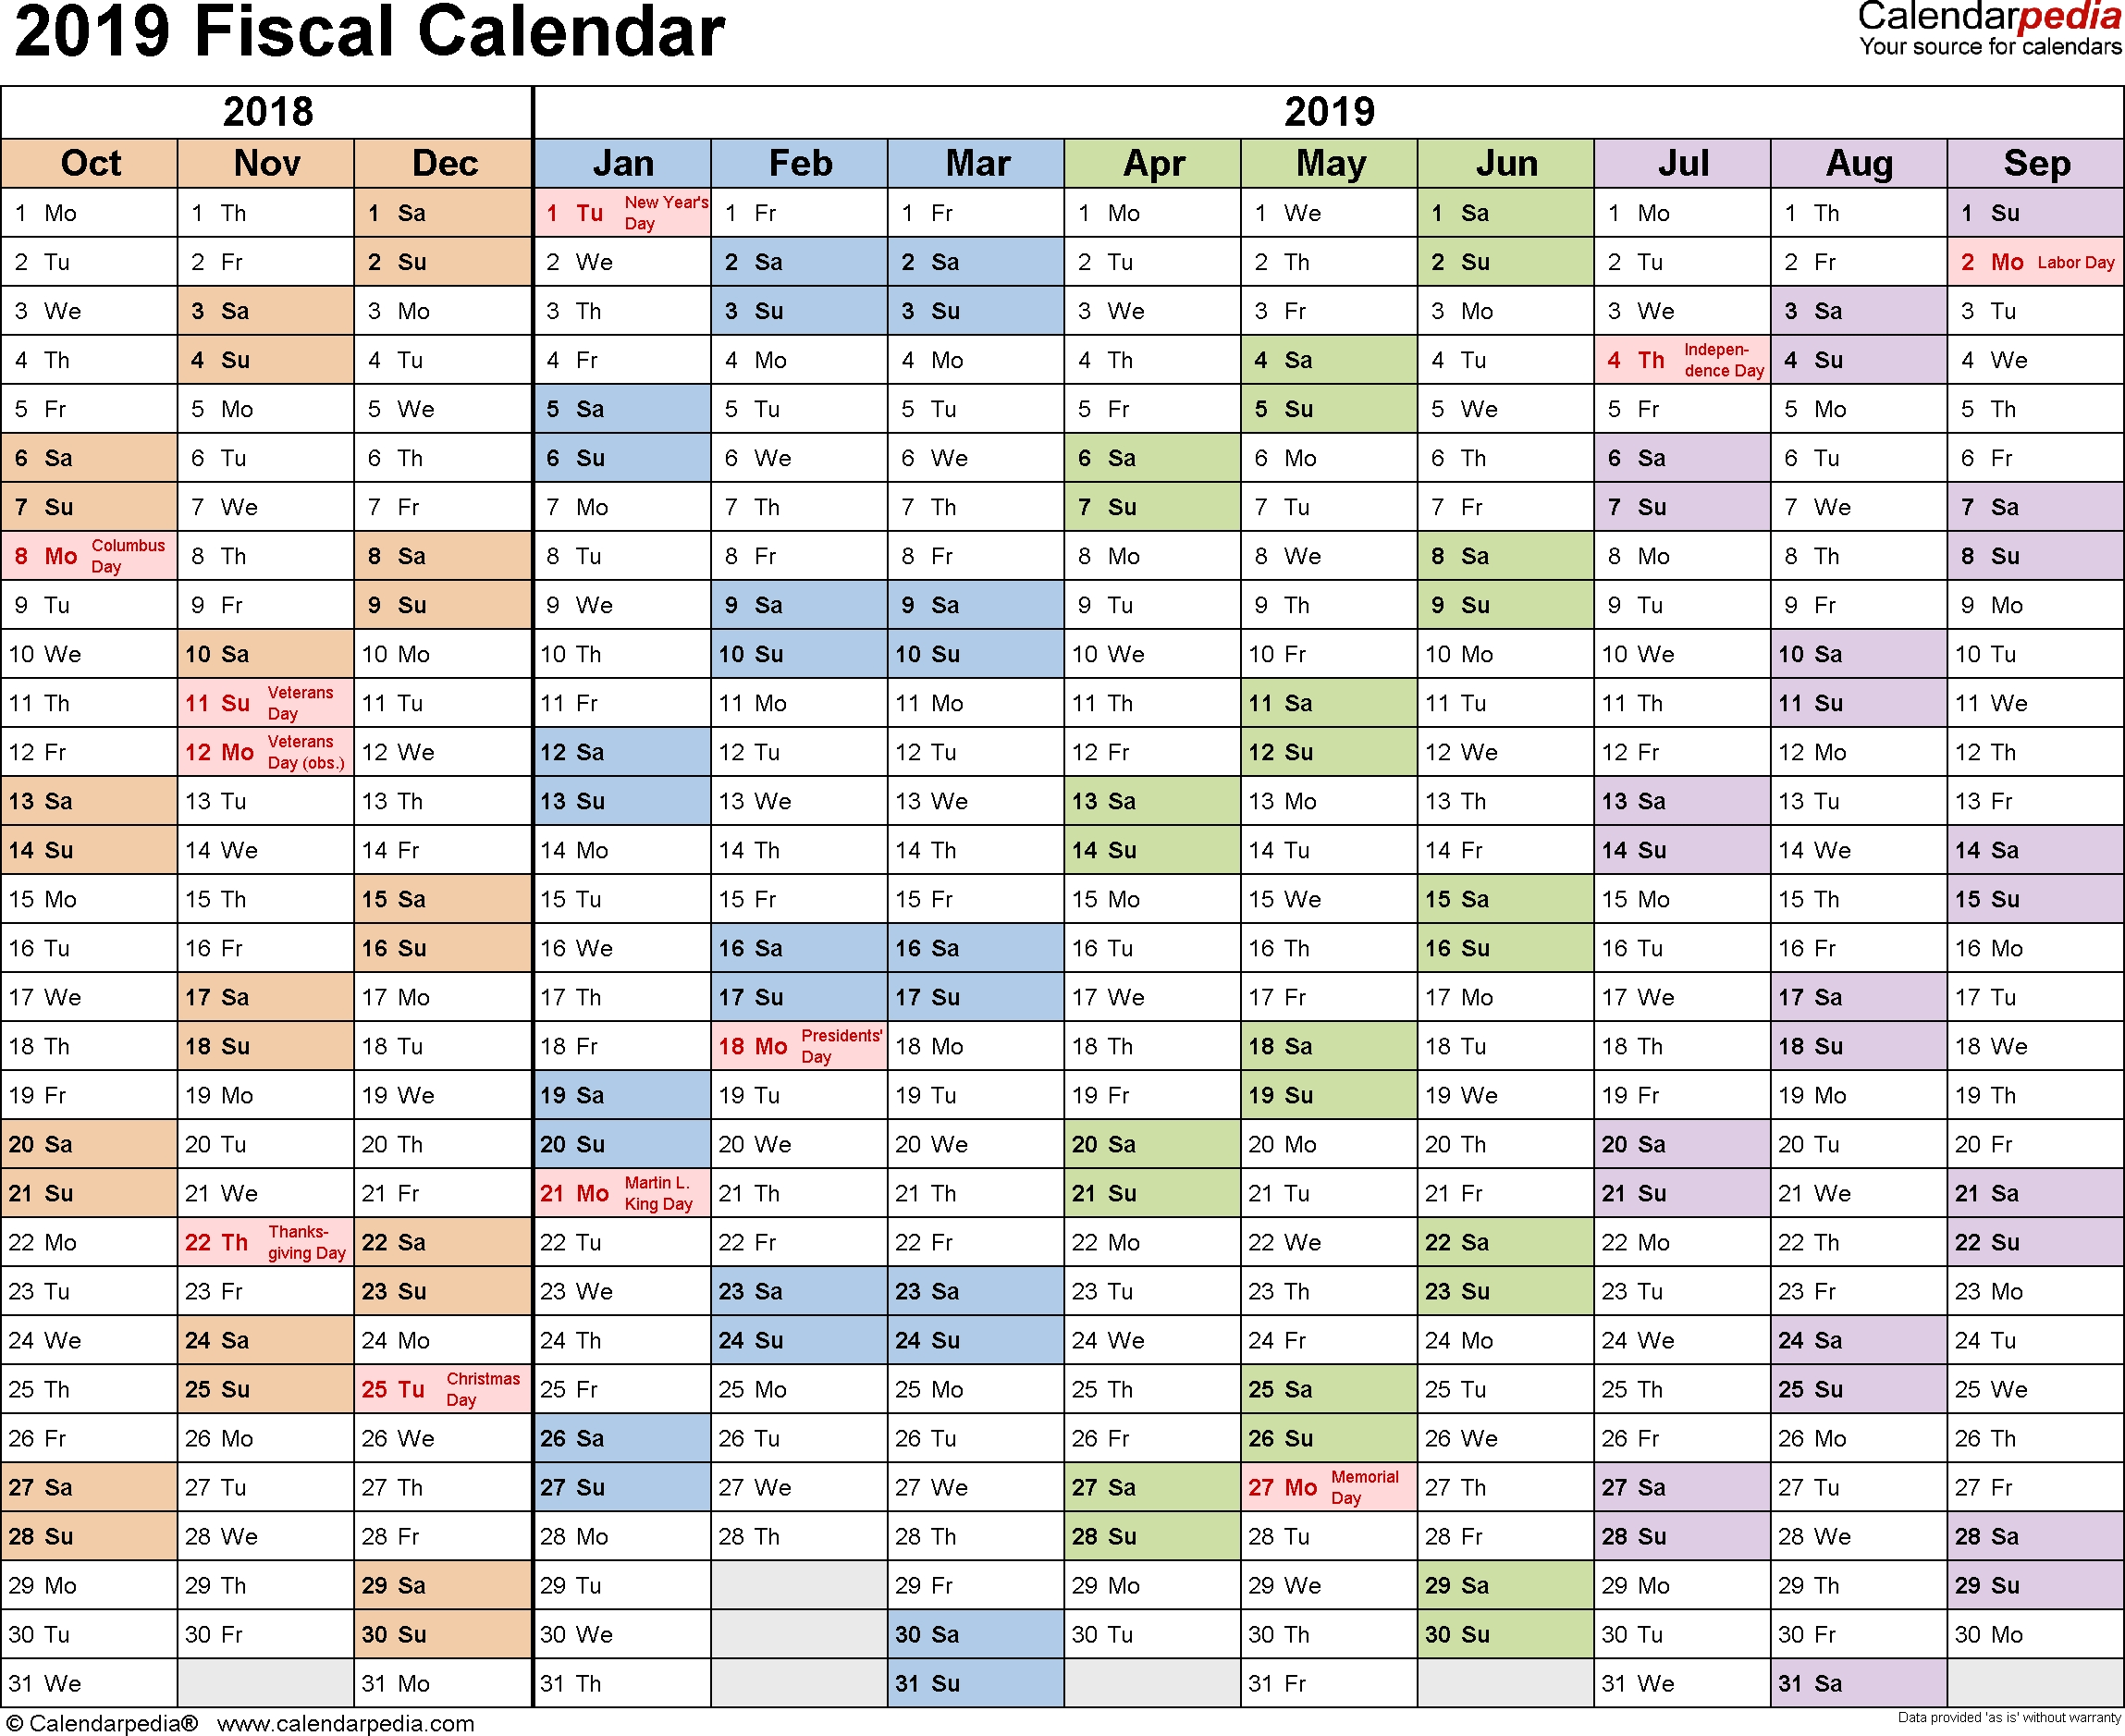 Fiscal Calendars 2019 As Free Printable Excel Templates pertaining to Tax Year Calendar 2019 2020